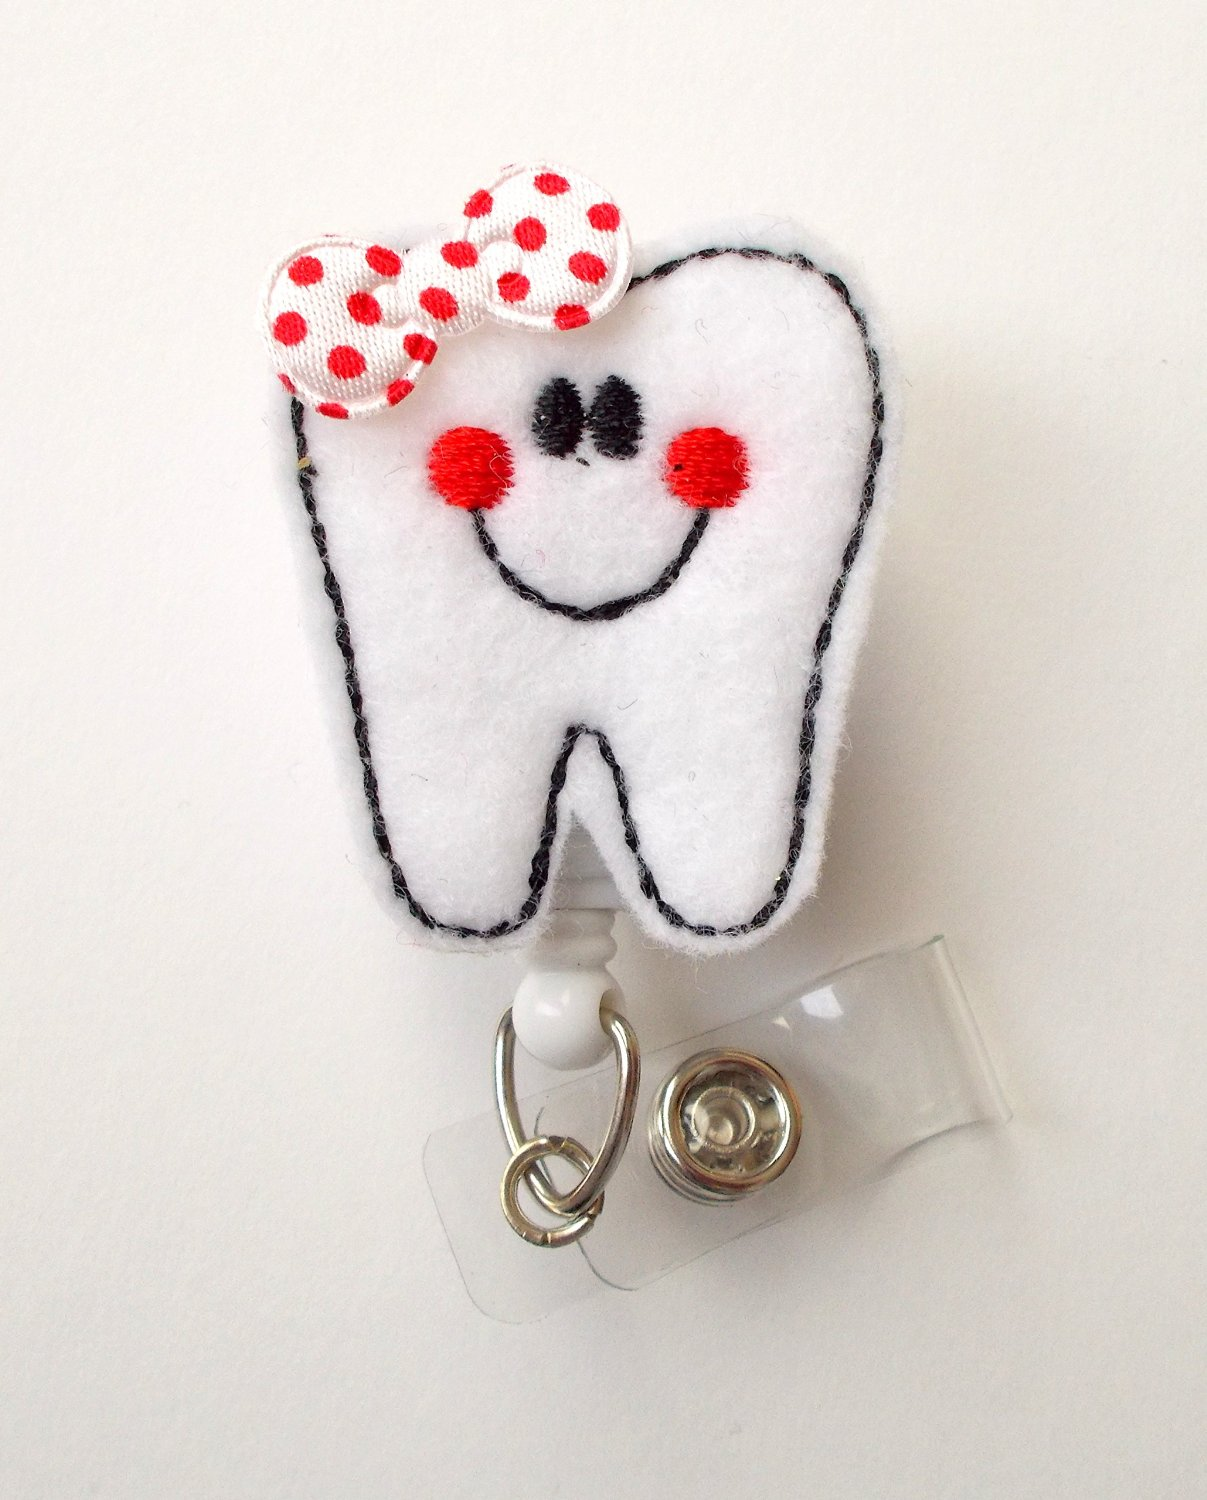 Tina the Tooth - Retractable ID Badge Reel - Dental Assistant Badge Holder - Cute Badge Reel - Dentist Badge Holder - Orthodontist Badge Clip - Orthodontic Assistant Badge - Felt Badge - Dental Hygienist ID Badge - The Badge Shack